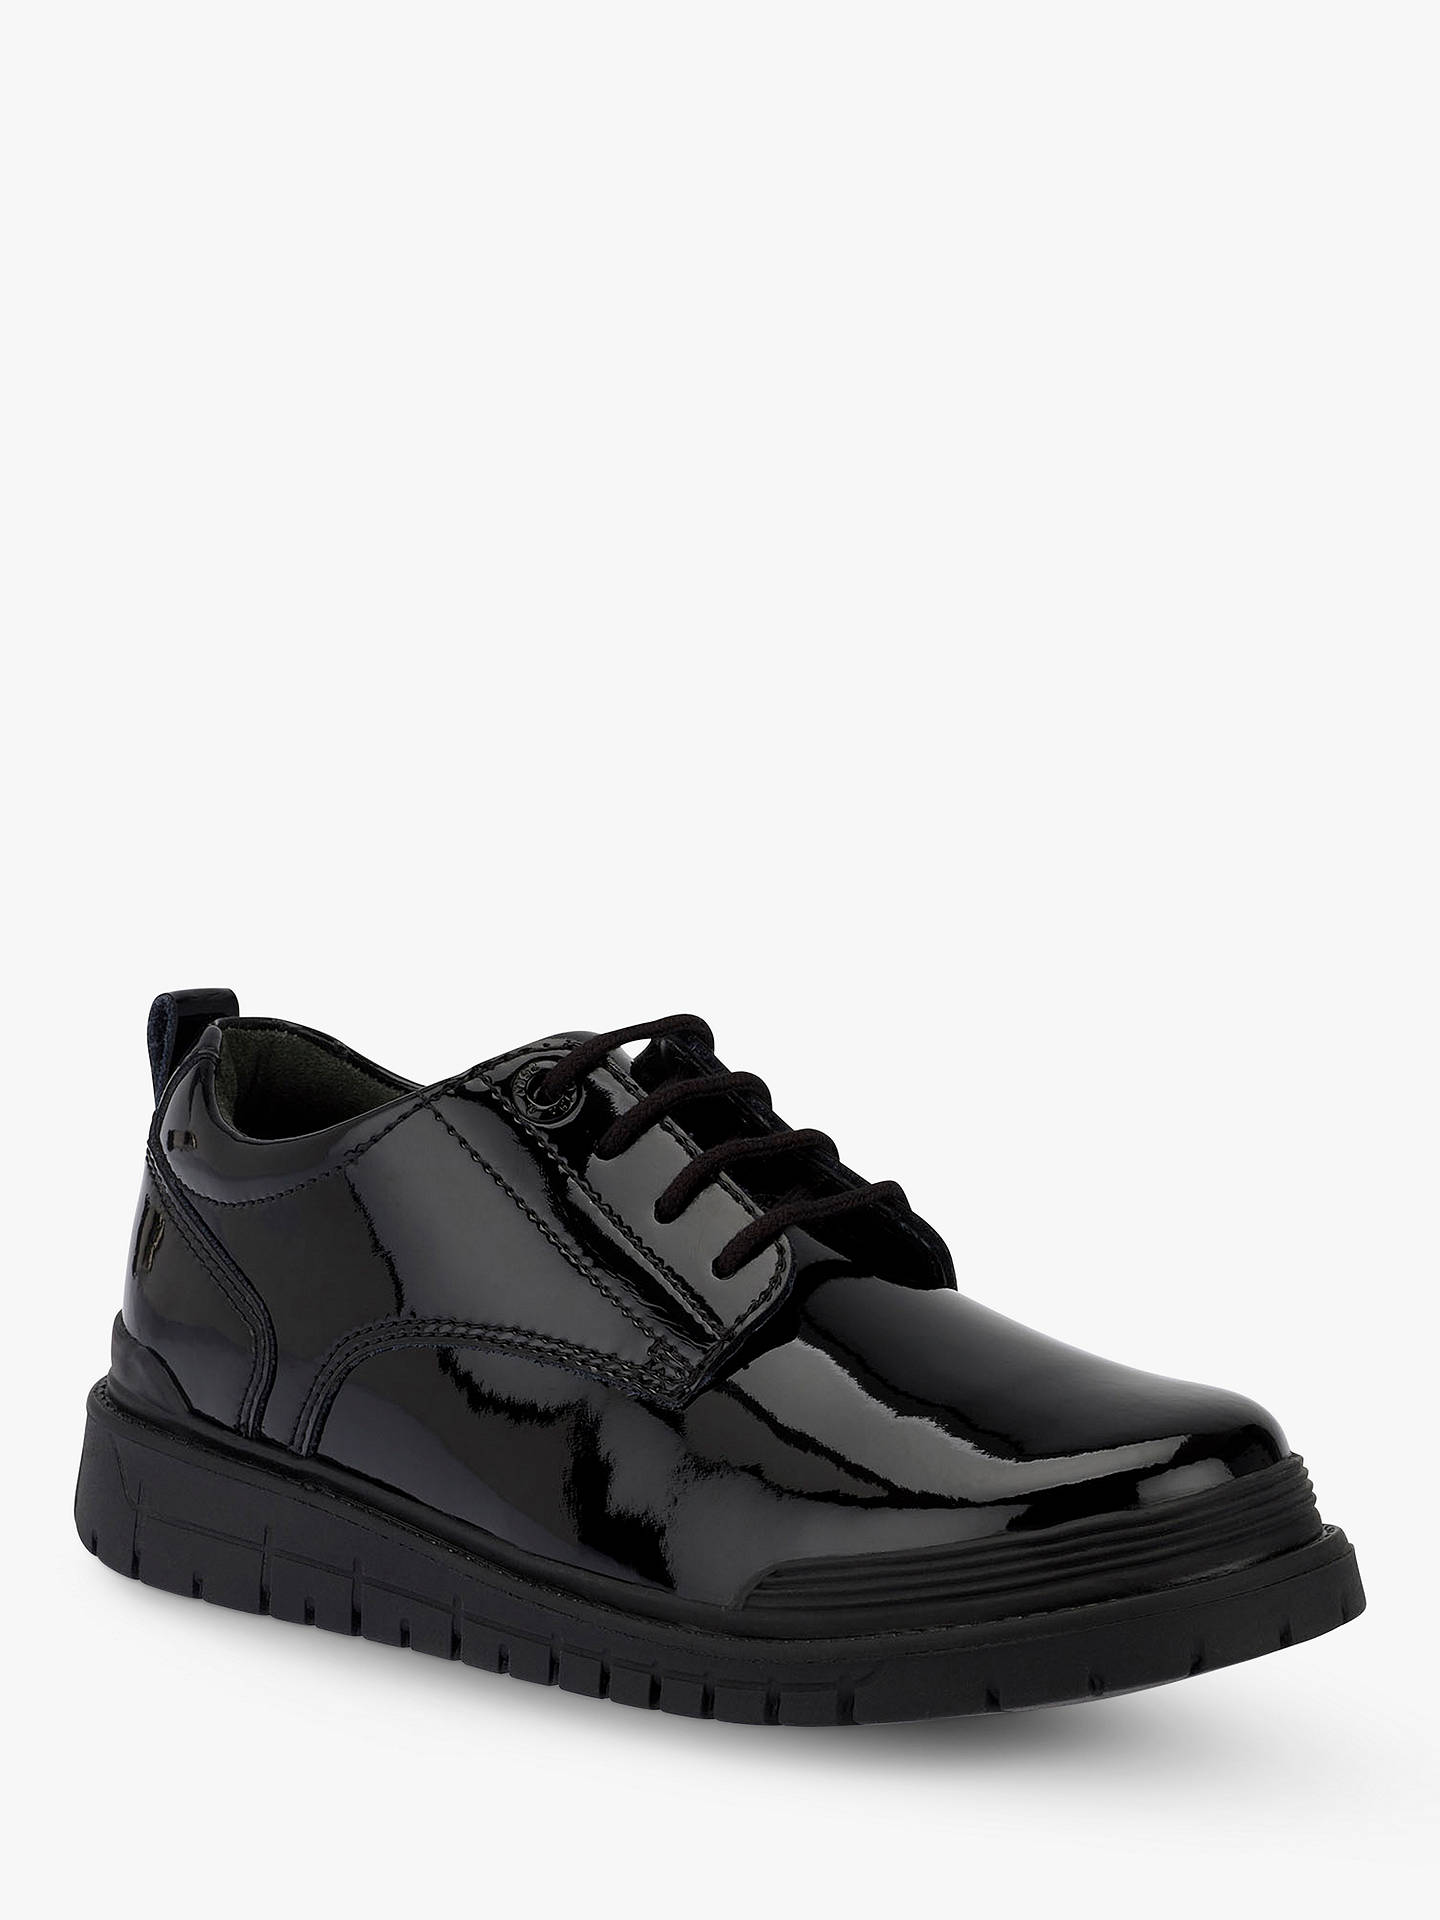 BuyStart-rite Force Lace Up Brogues, Black Patent, 13F Jnr Online at johnlewis.com